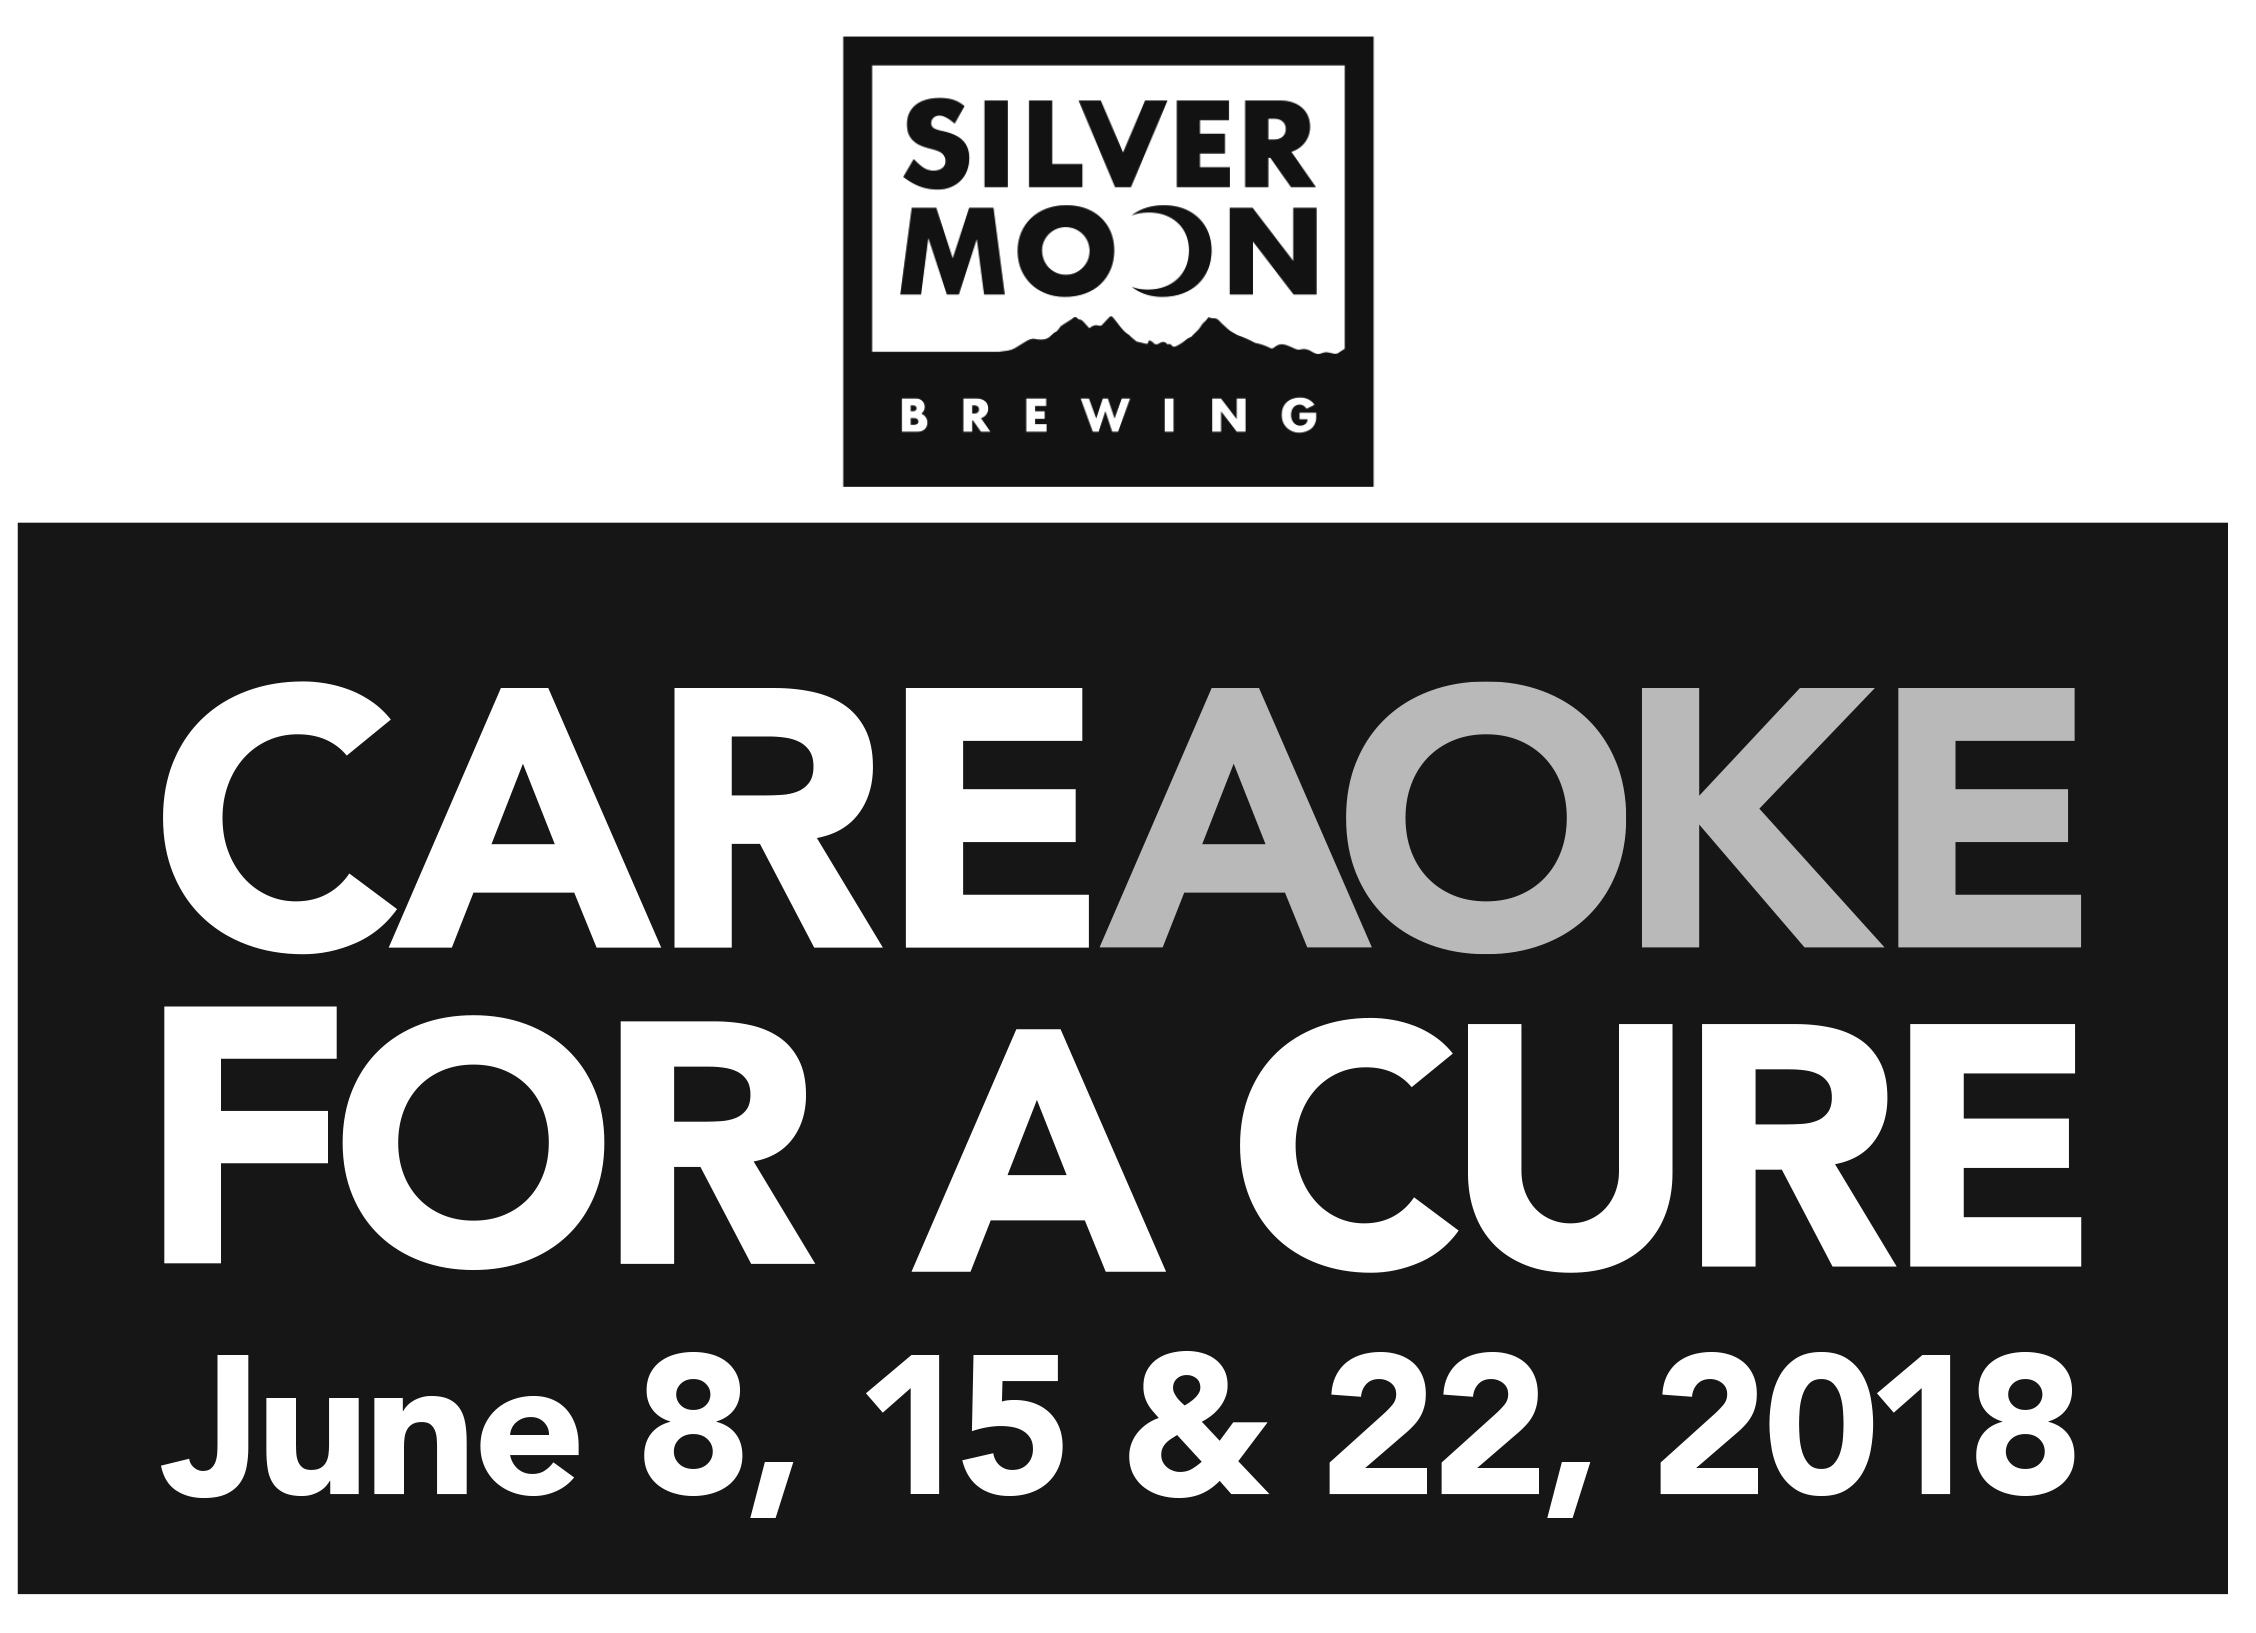 3rd Annual CAREAOKE for a Cure Contest @ Silver Moon Brewing | Bend | Oregon | United States